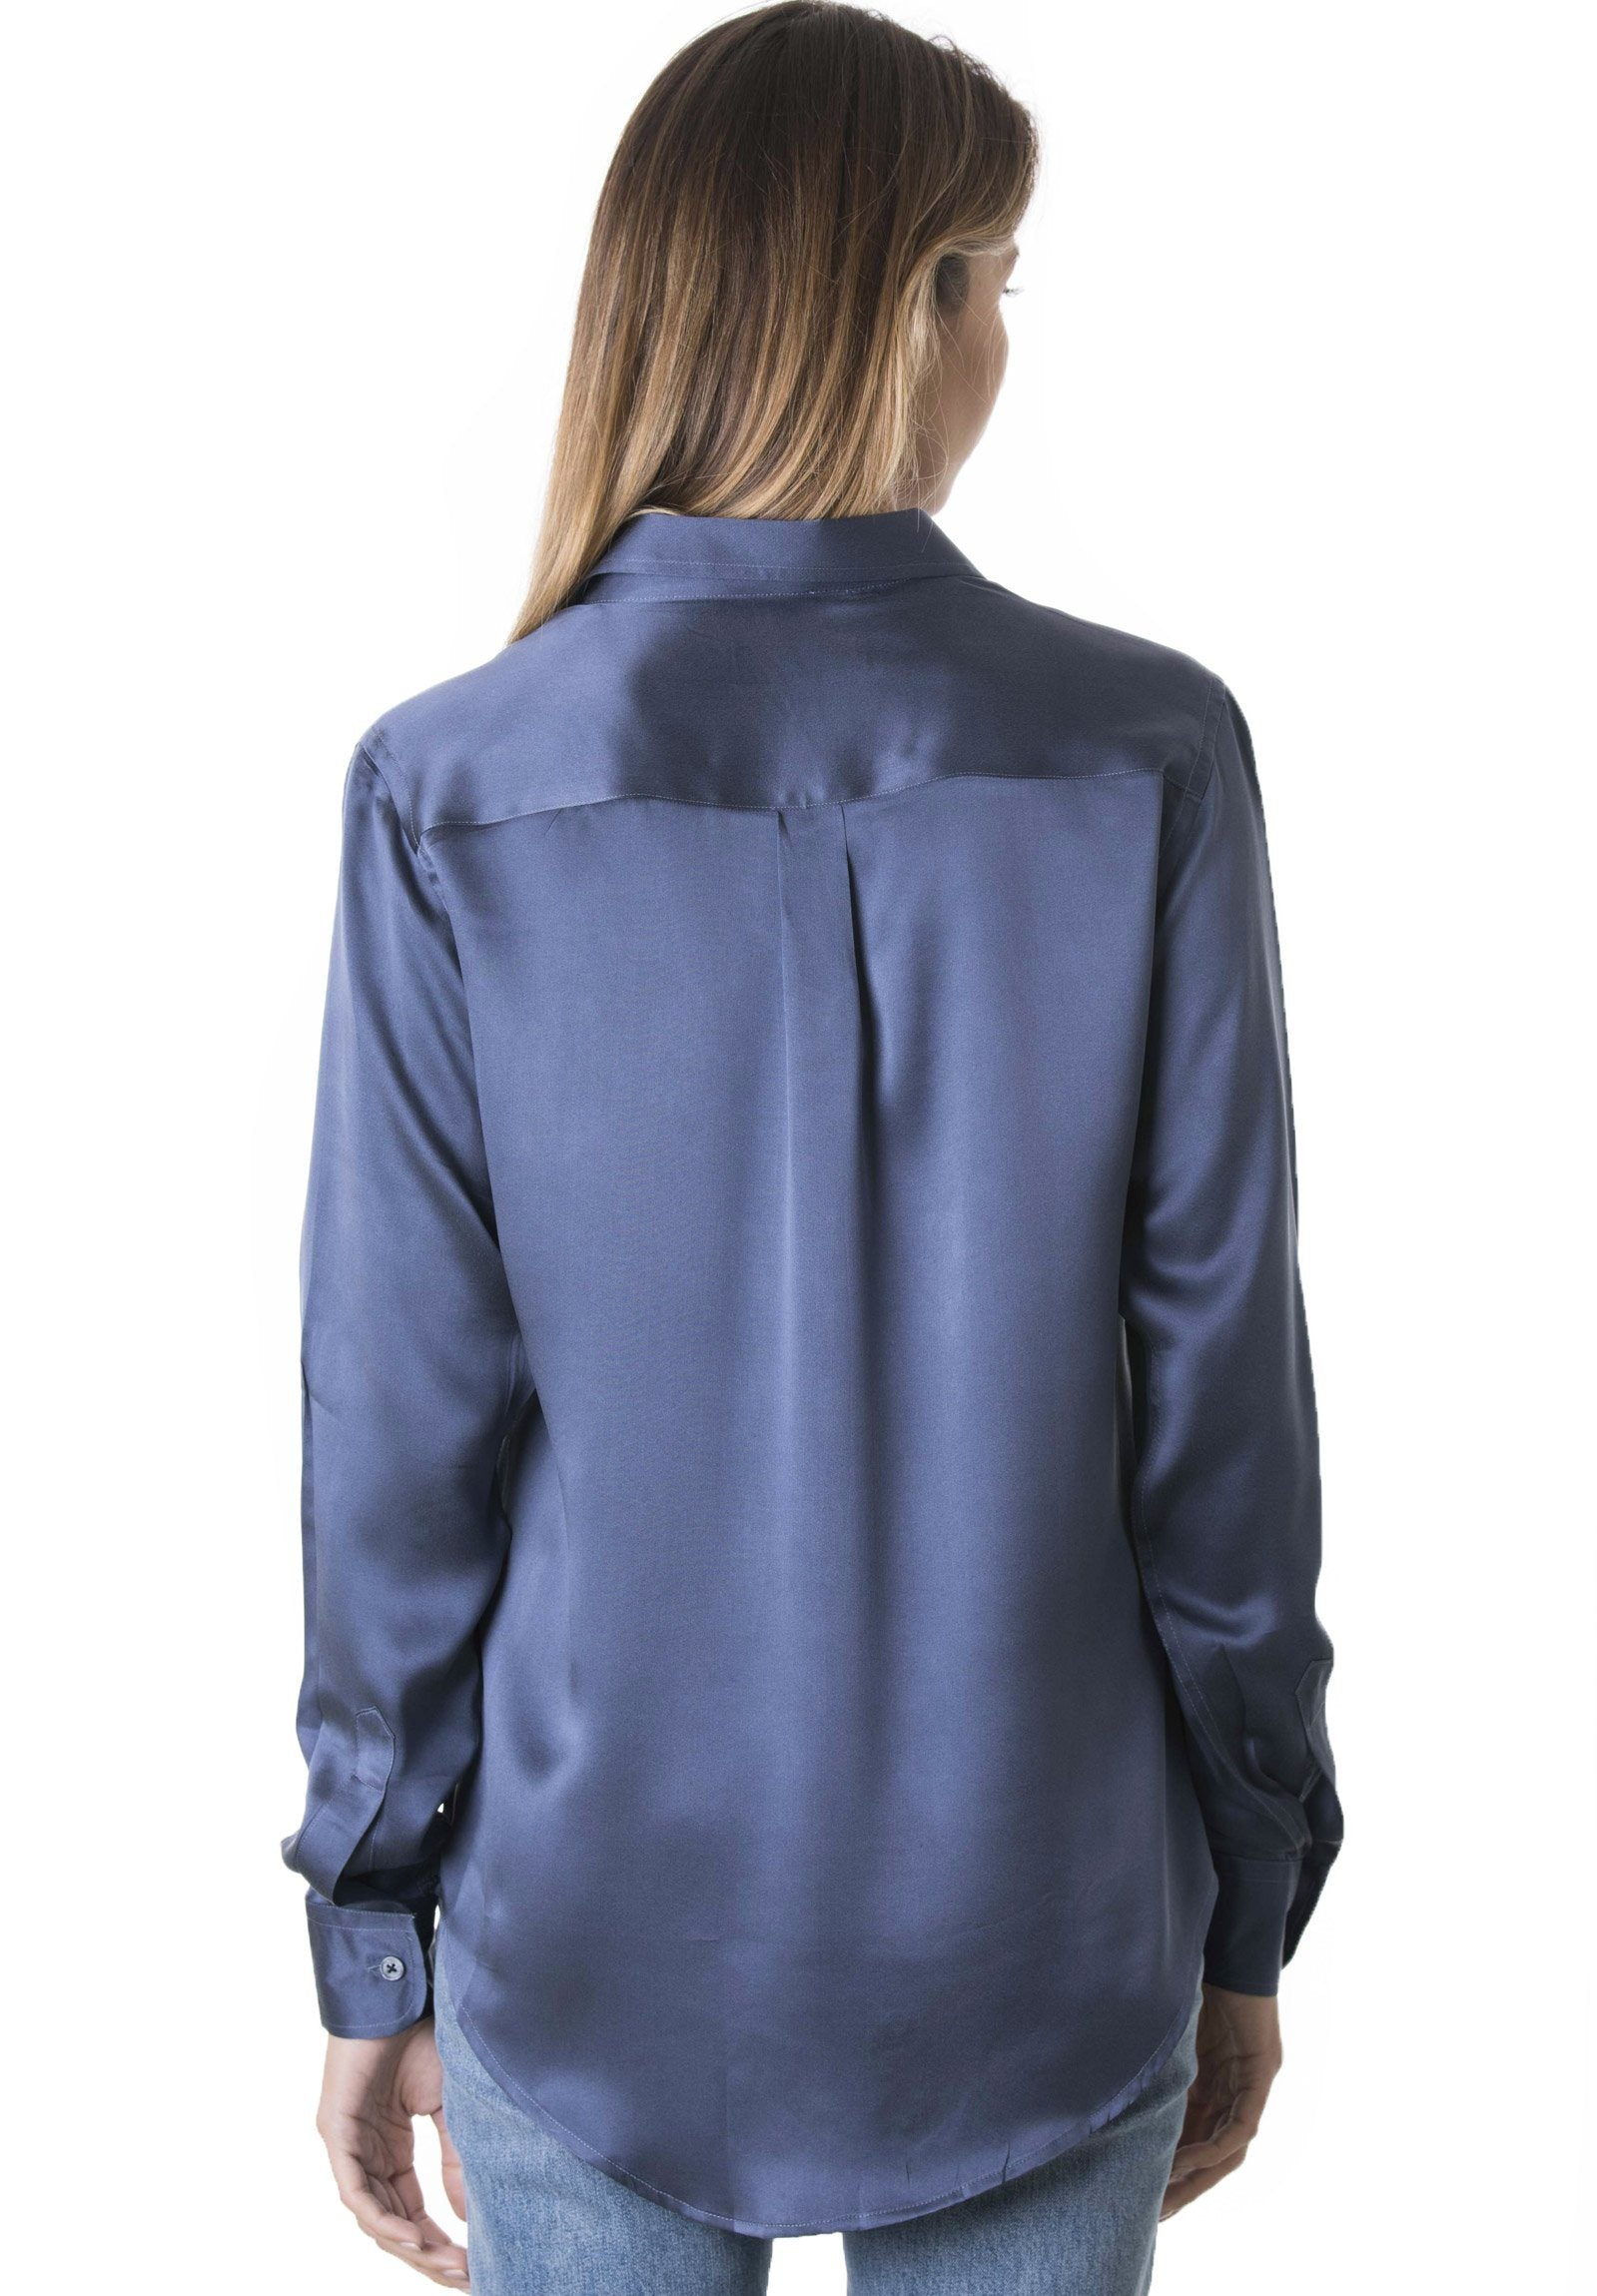 Satin Avio Blue, Pure Charmeuse Silk Shirt